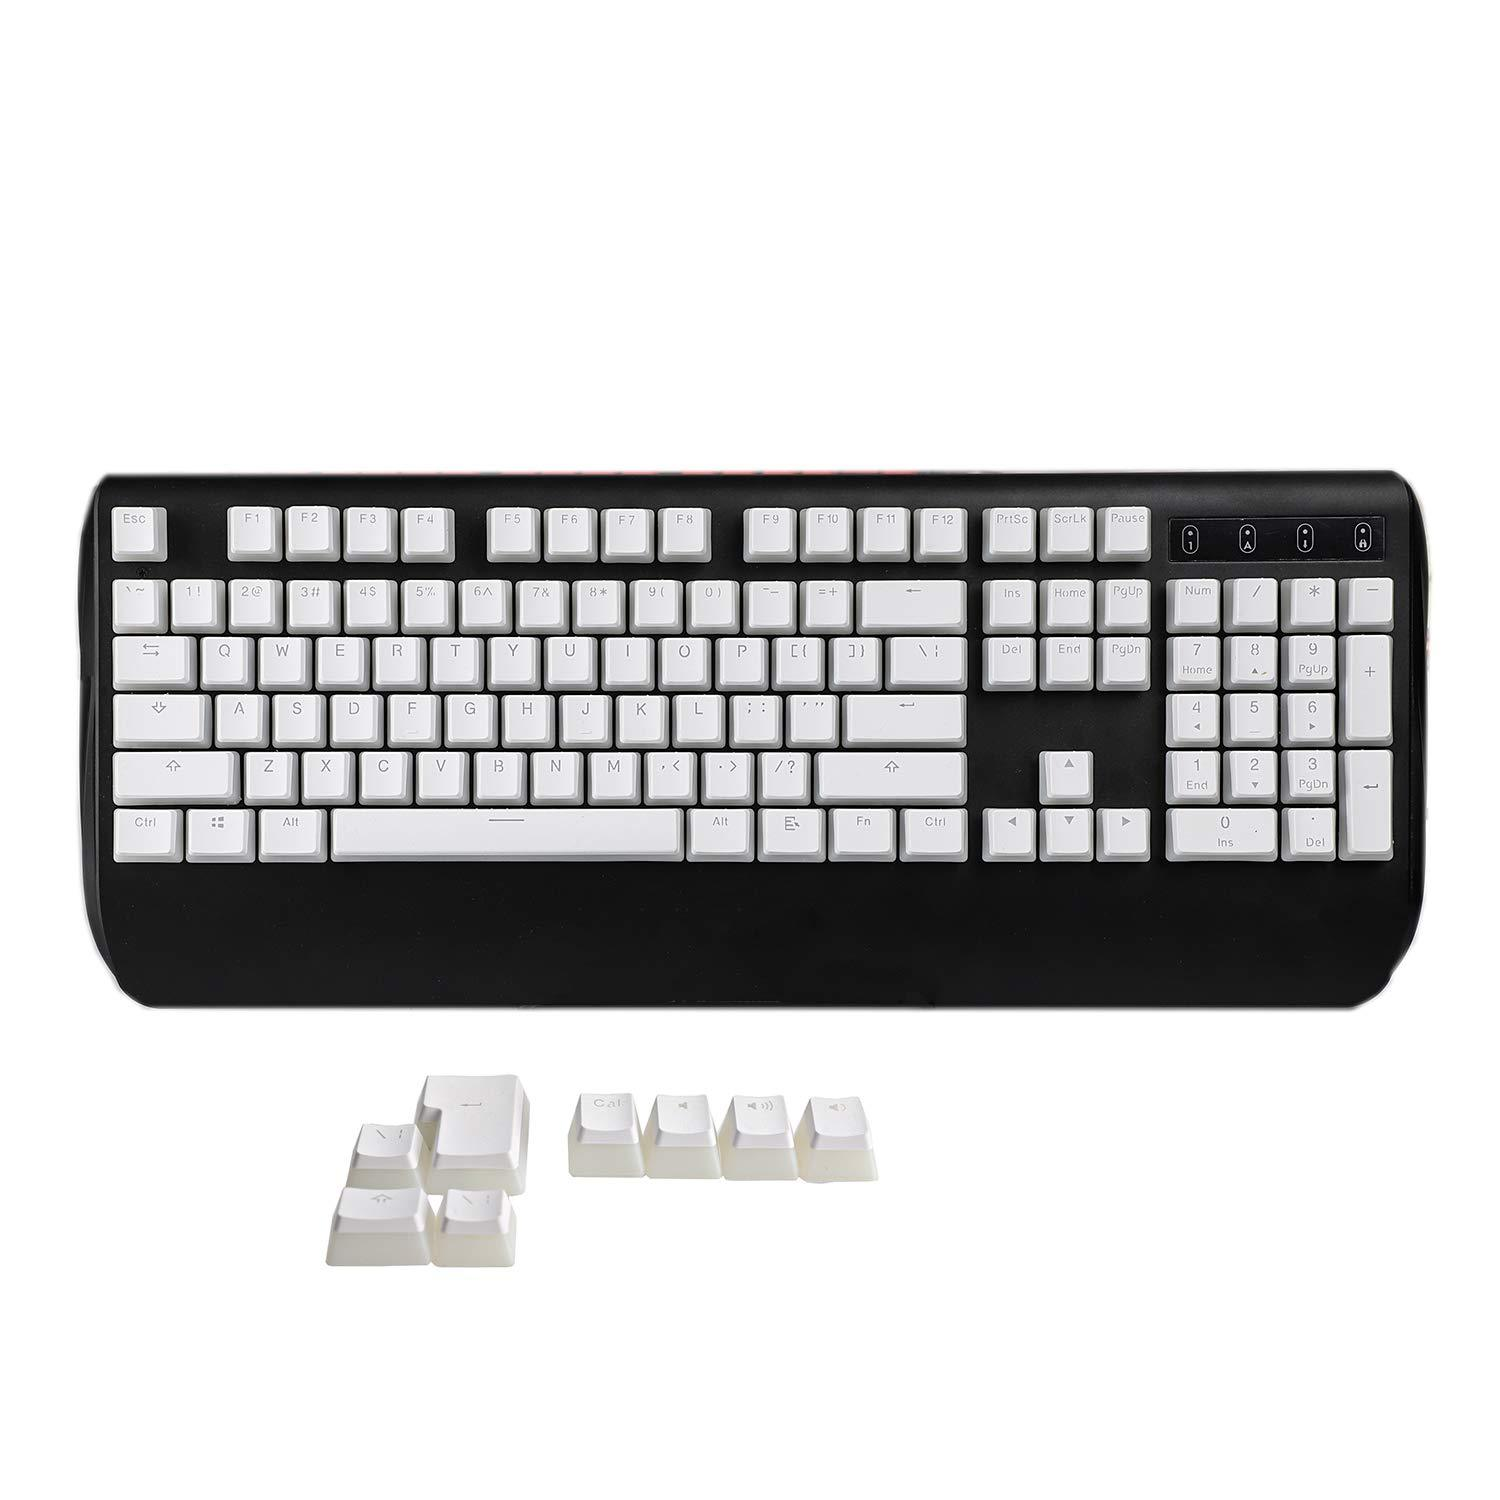 108 Key Cherry MX Keycaps - White